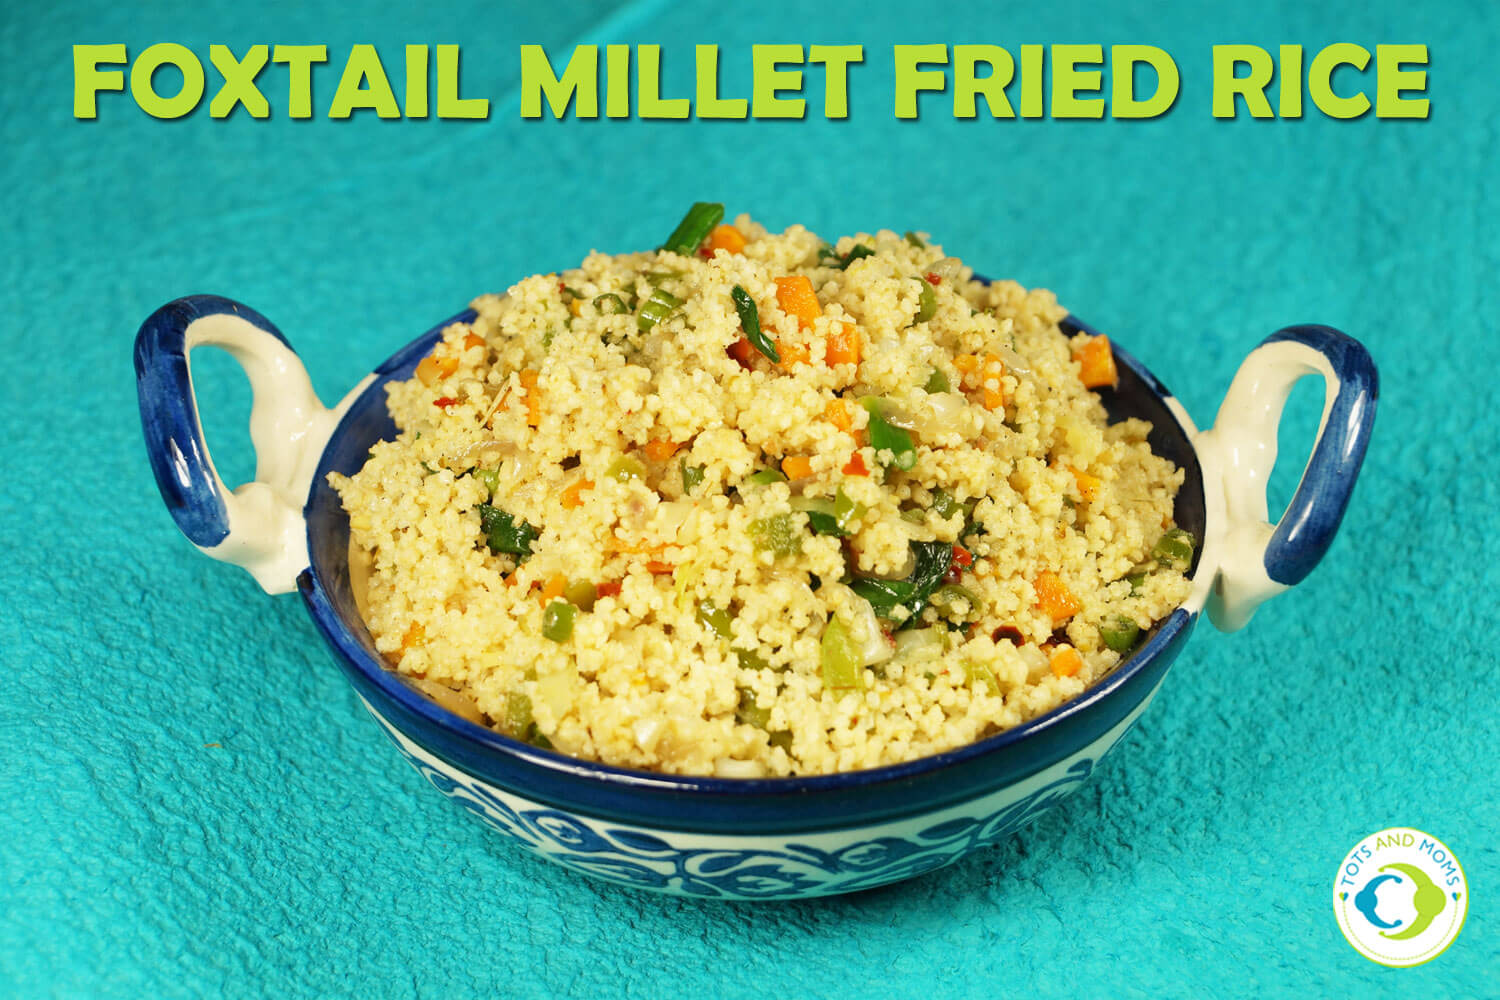 Nutrition benefits of Foxtail Millet Fried Rice